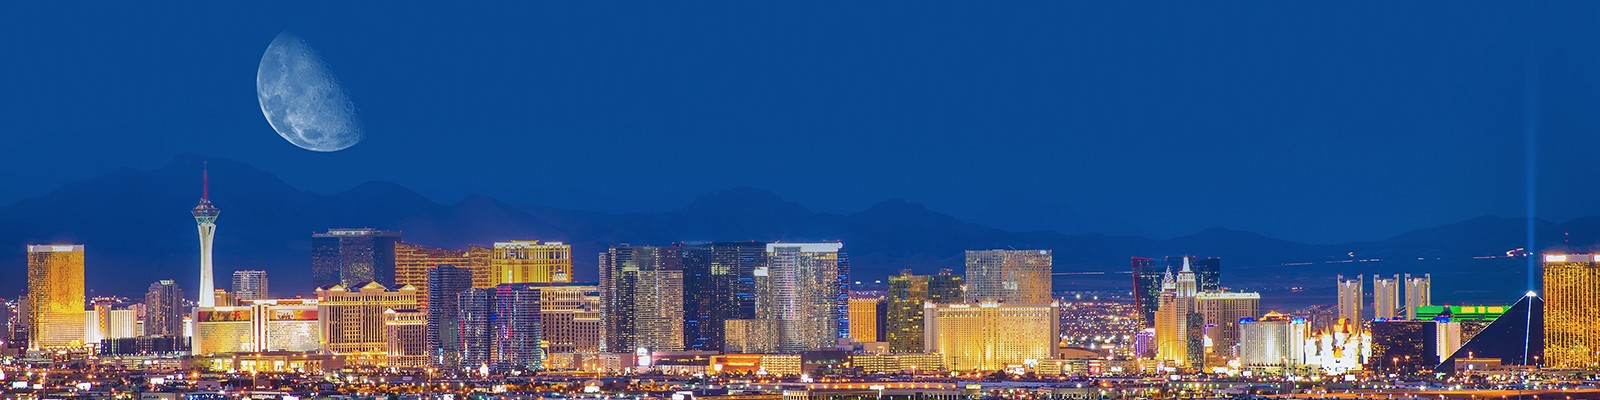 las vegas honeymoons header